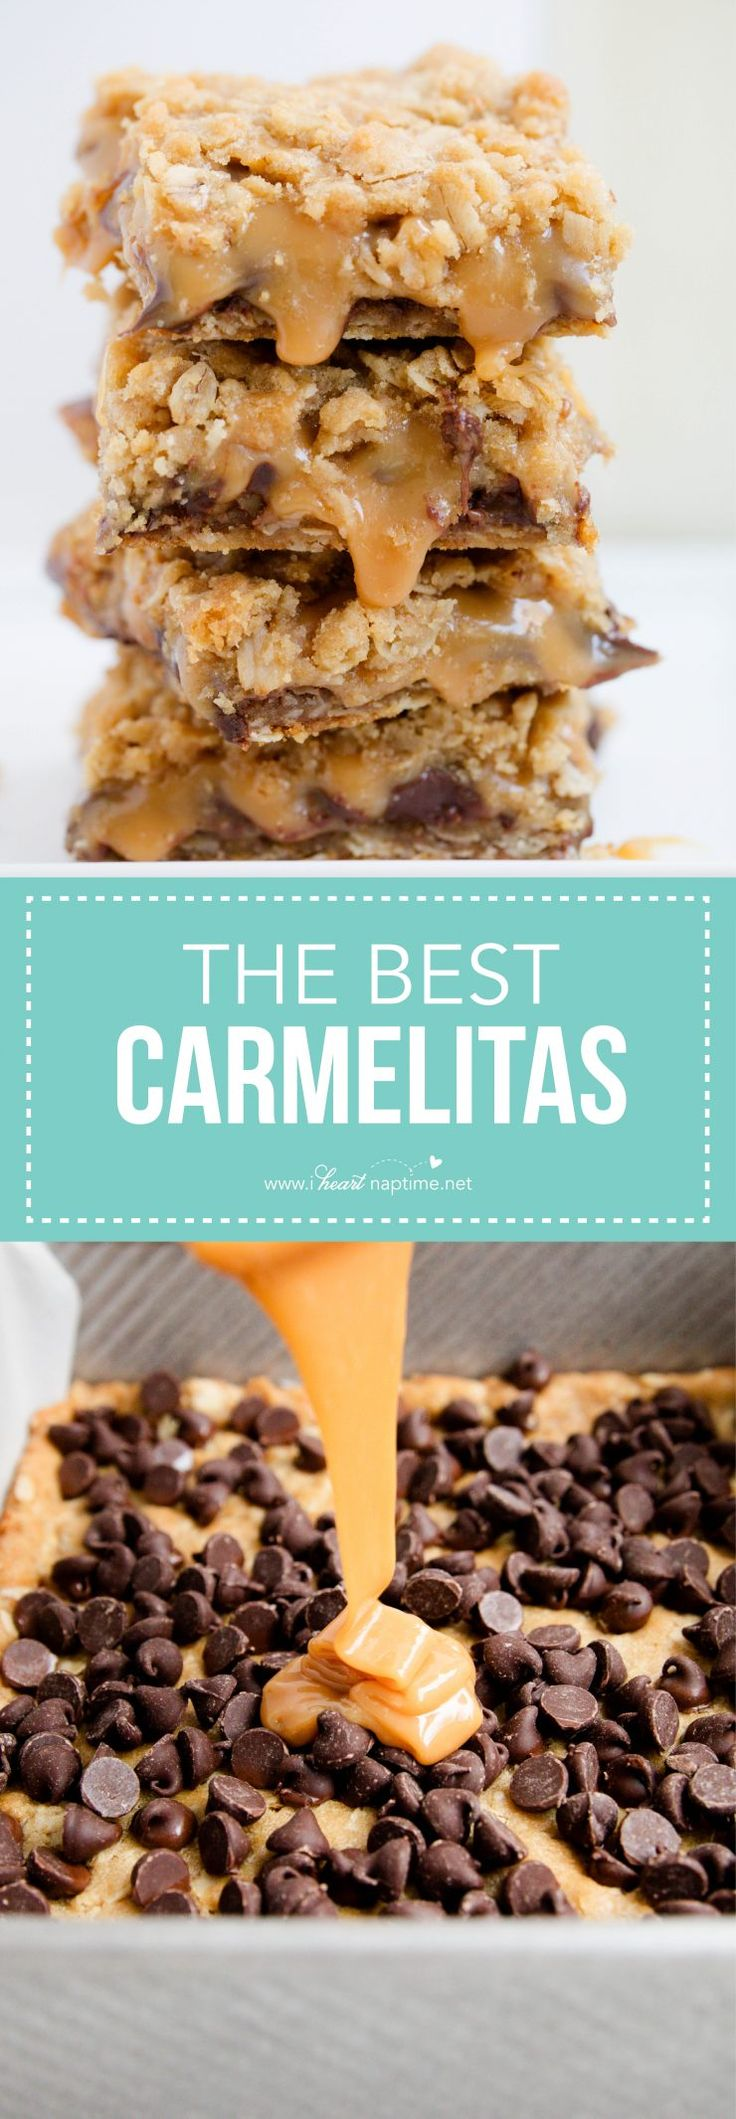 Ooey gooey carmelitas recipe -a soft and chewy brown sugar oatmeal cookie crust with a thick layer of chocolate and caramel. Take one bite and you'll be hooked!